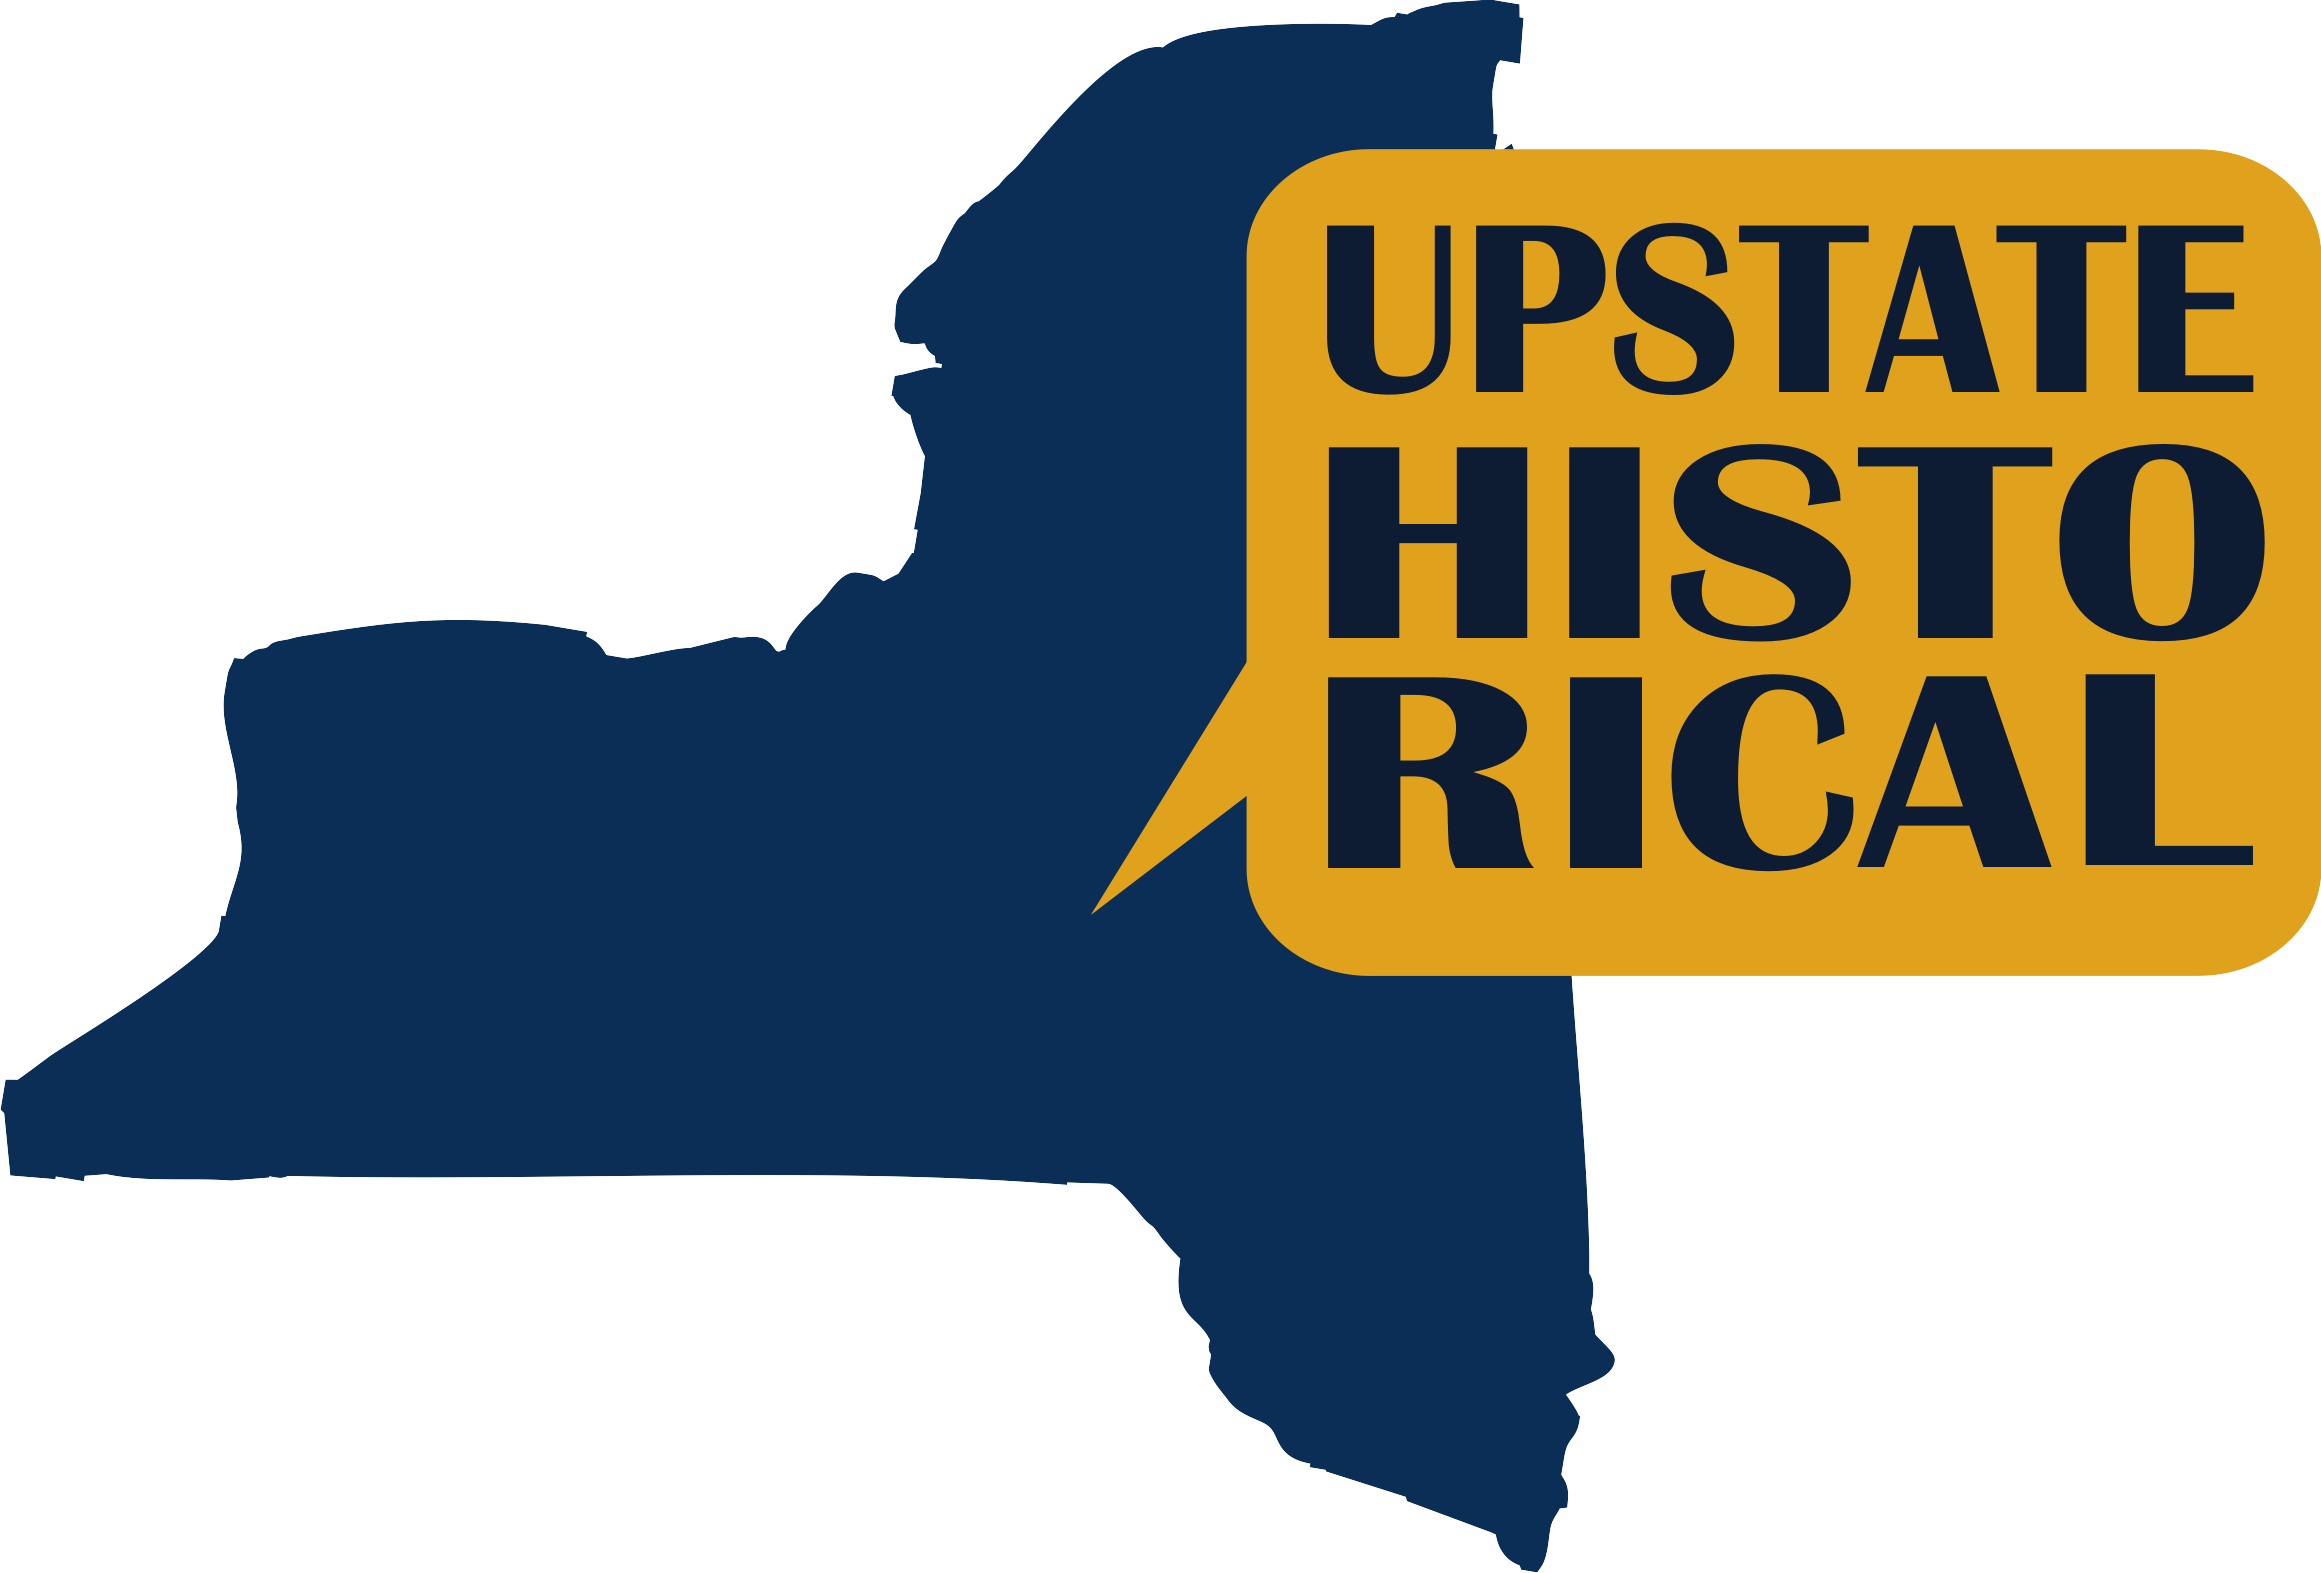 UpstateHistorical